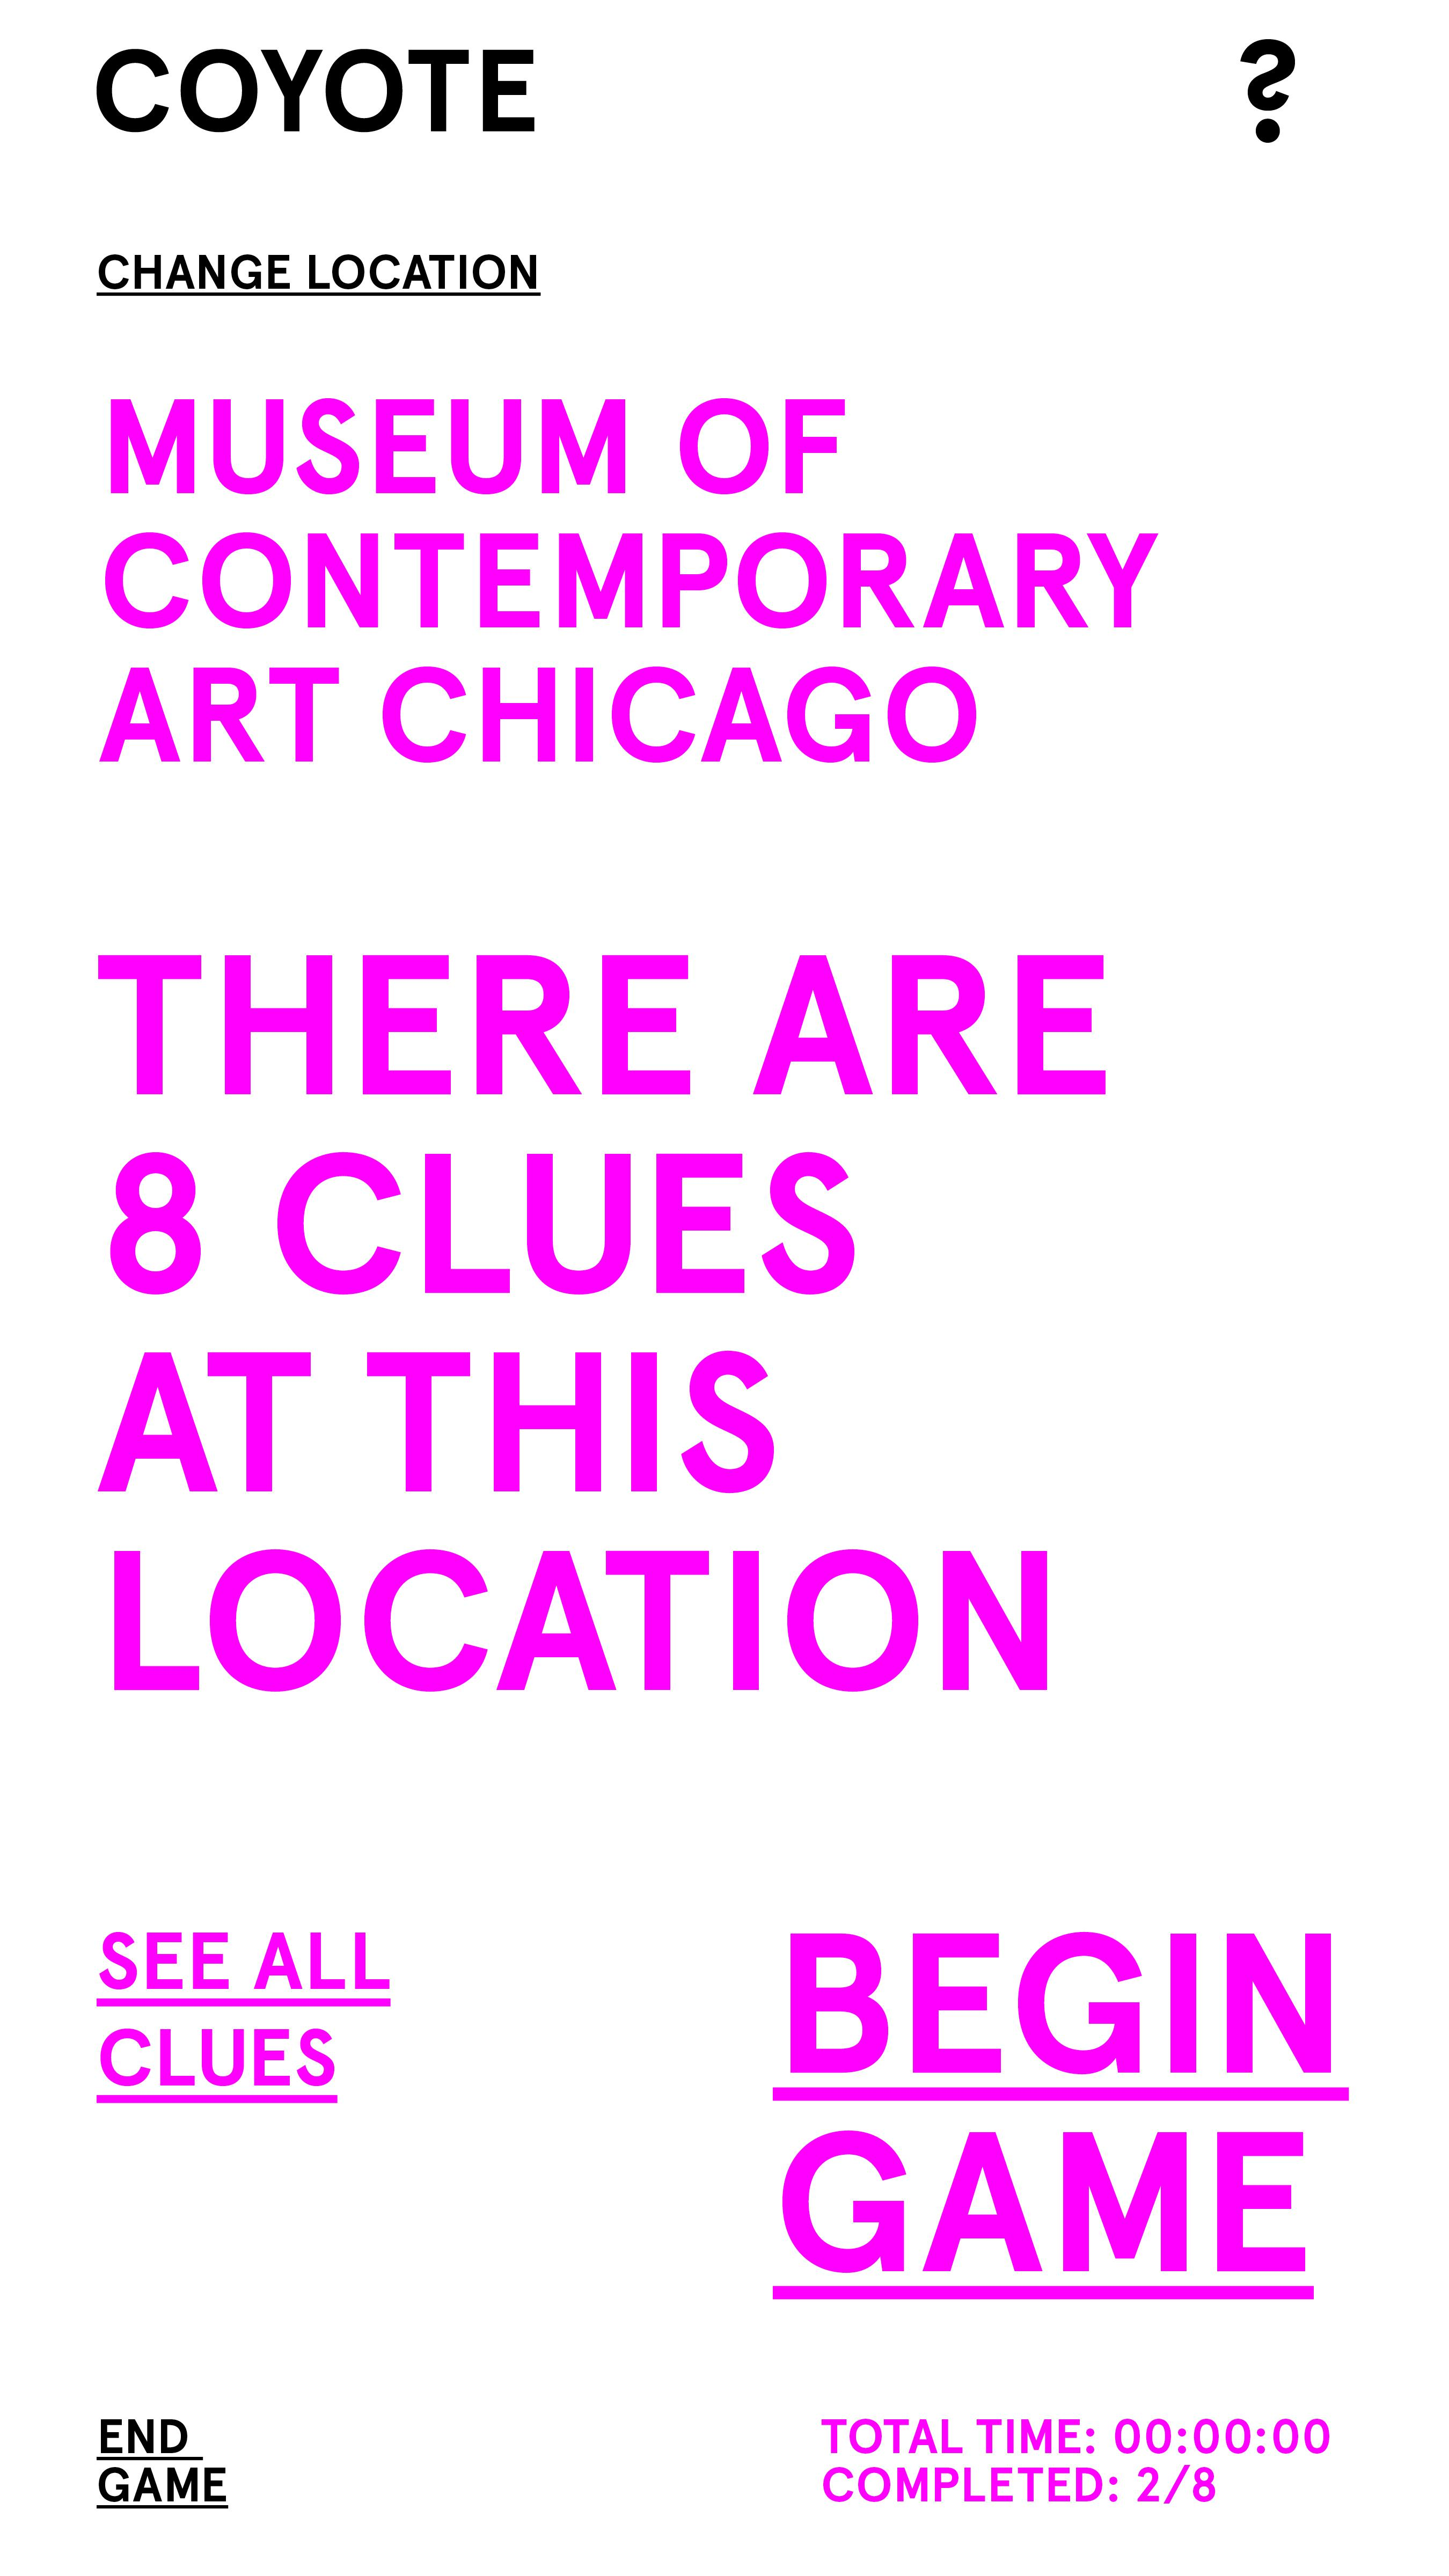 """Vivid pink text reads """"MUSEUM OF CONTEMPORARY ART CHICAGO,"""" """"THERE ARE 8 CLUES AT THIS LOCATION,"""" """"SEE ALL CLUES,"""" and """"BEGIN GAME."""""""